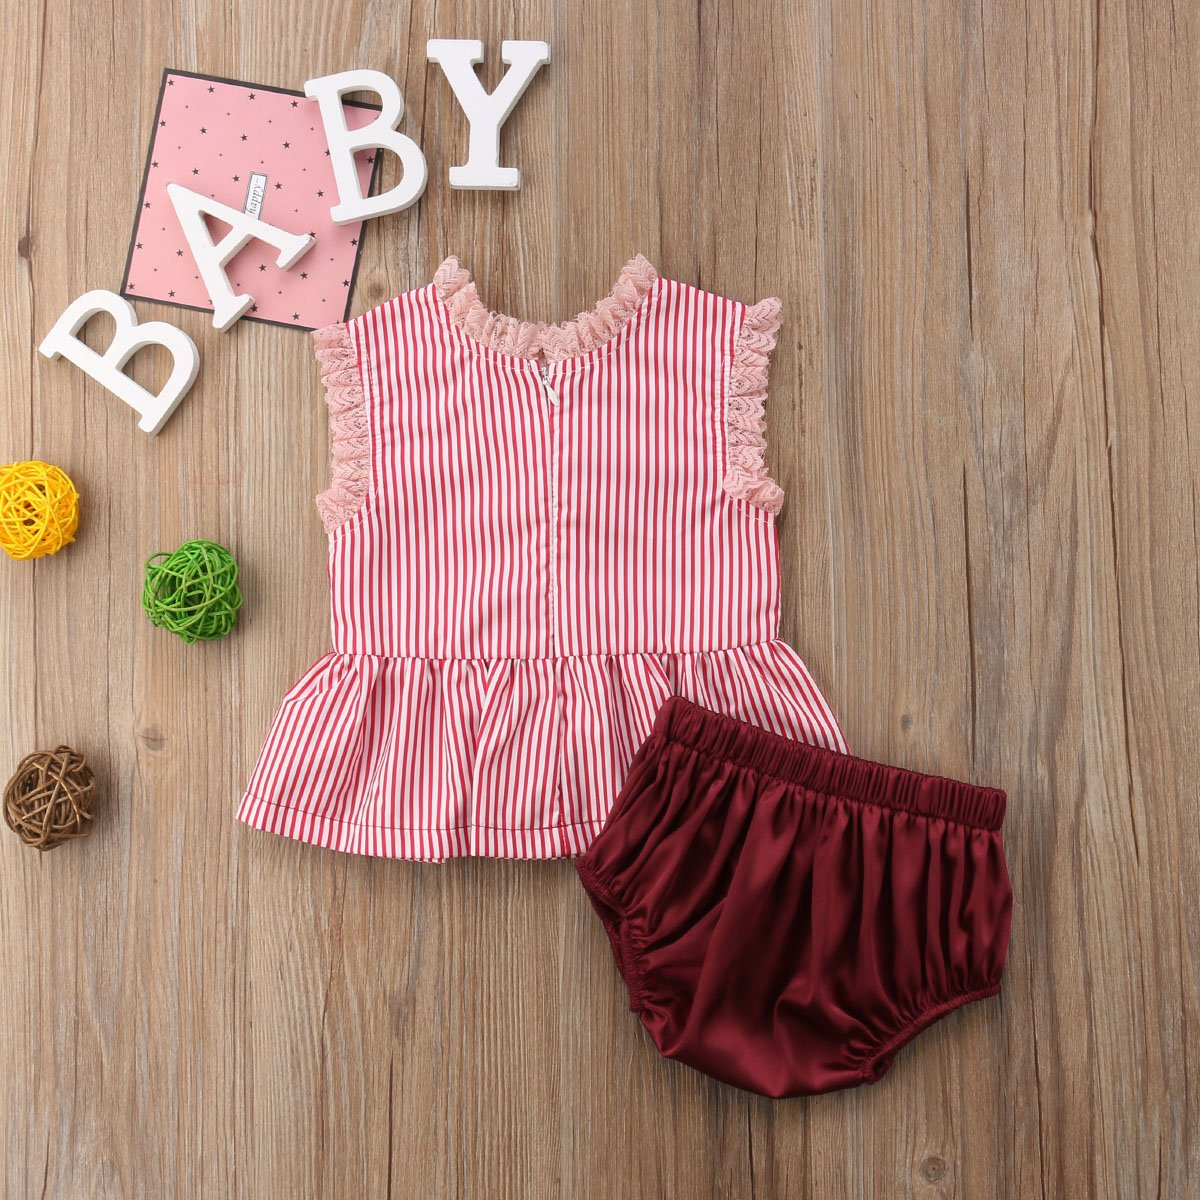 Andannby Toddler Baby Girls Sleeveless Stripe Lace Ruffle Tops+Blommer Shorts 2pcs Outfits